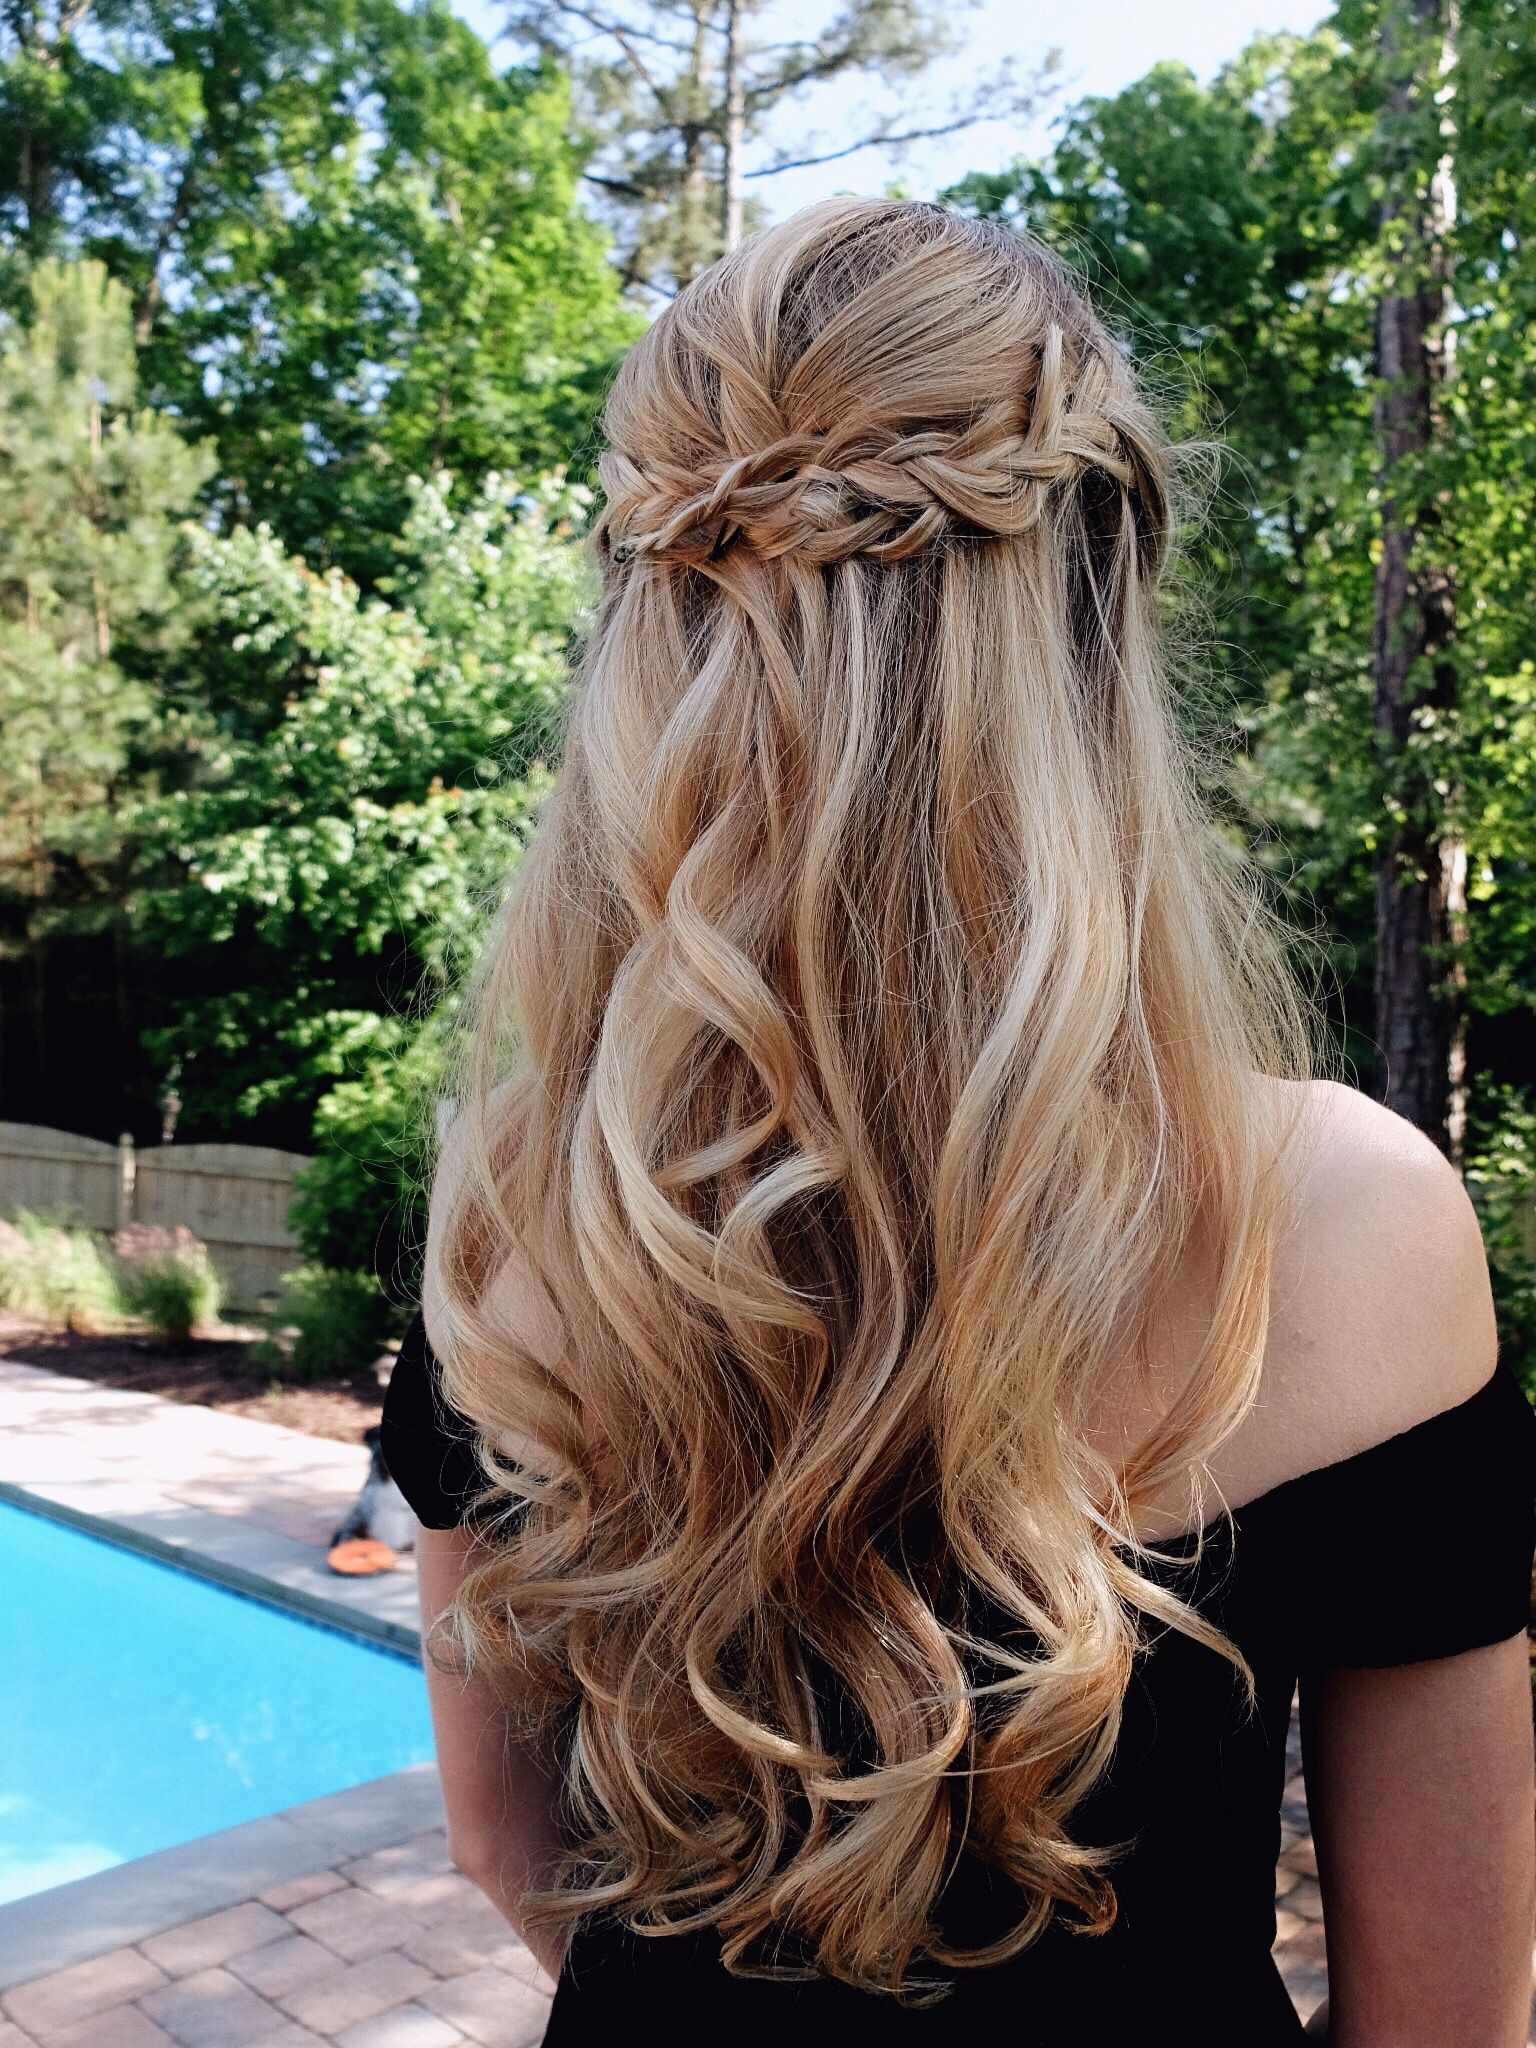 Beautiful Prom Hair Prom Promhair Braid Curls Homecoming Hairstyles Wedding Haircut Hair Beauty